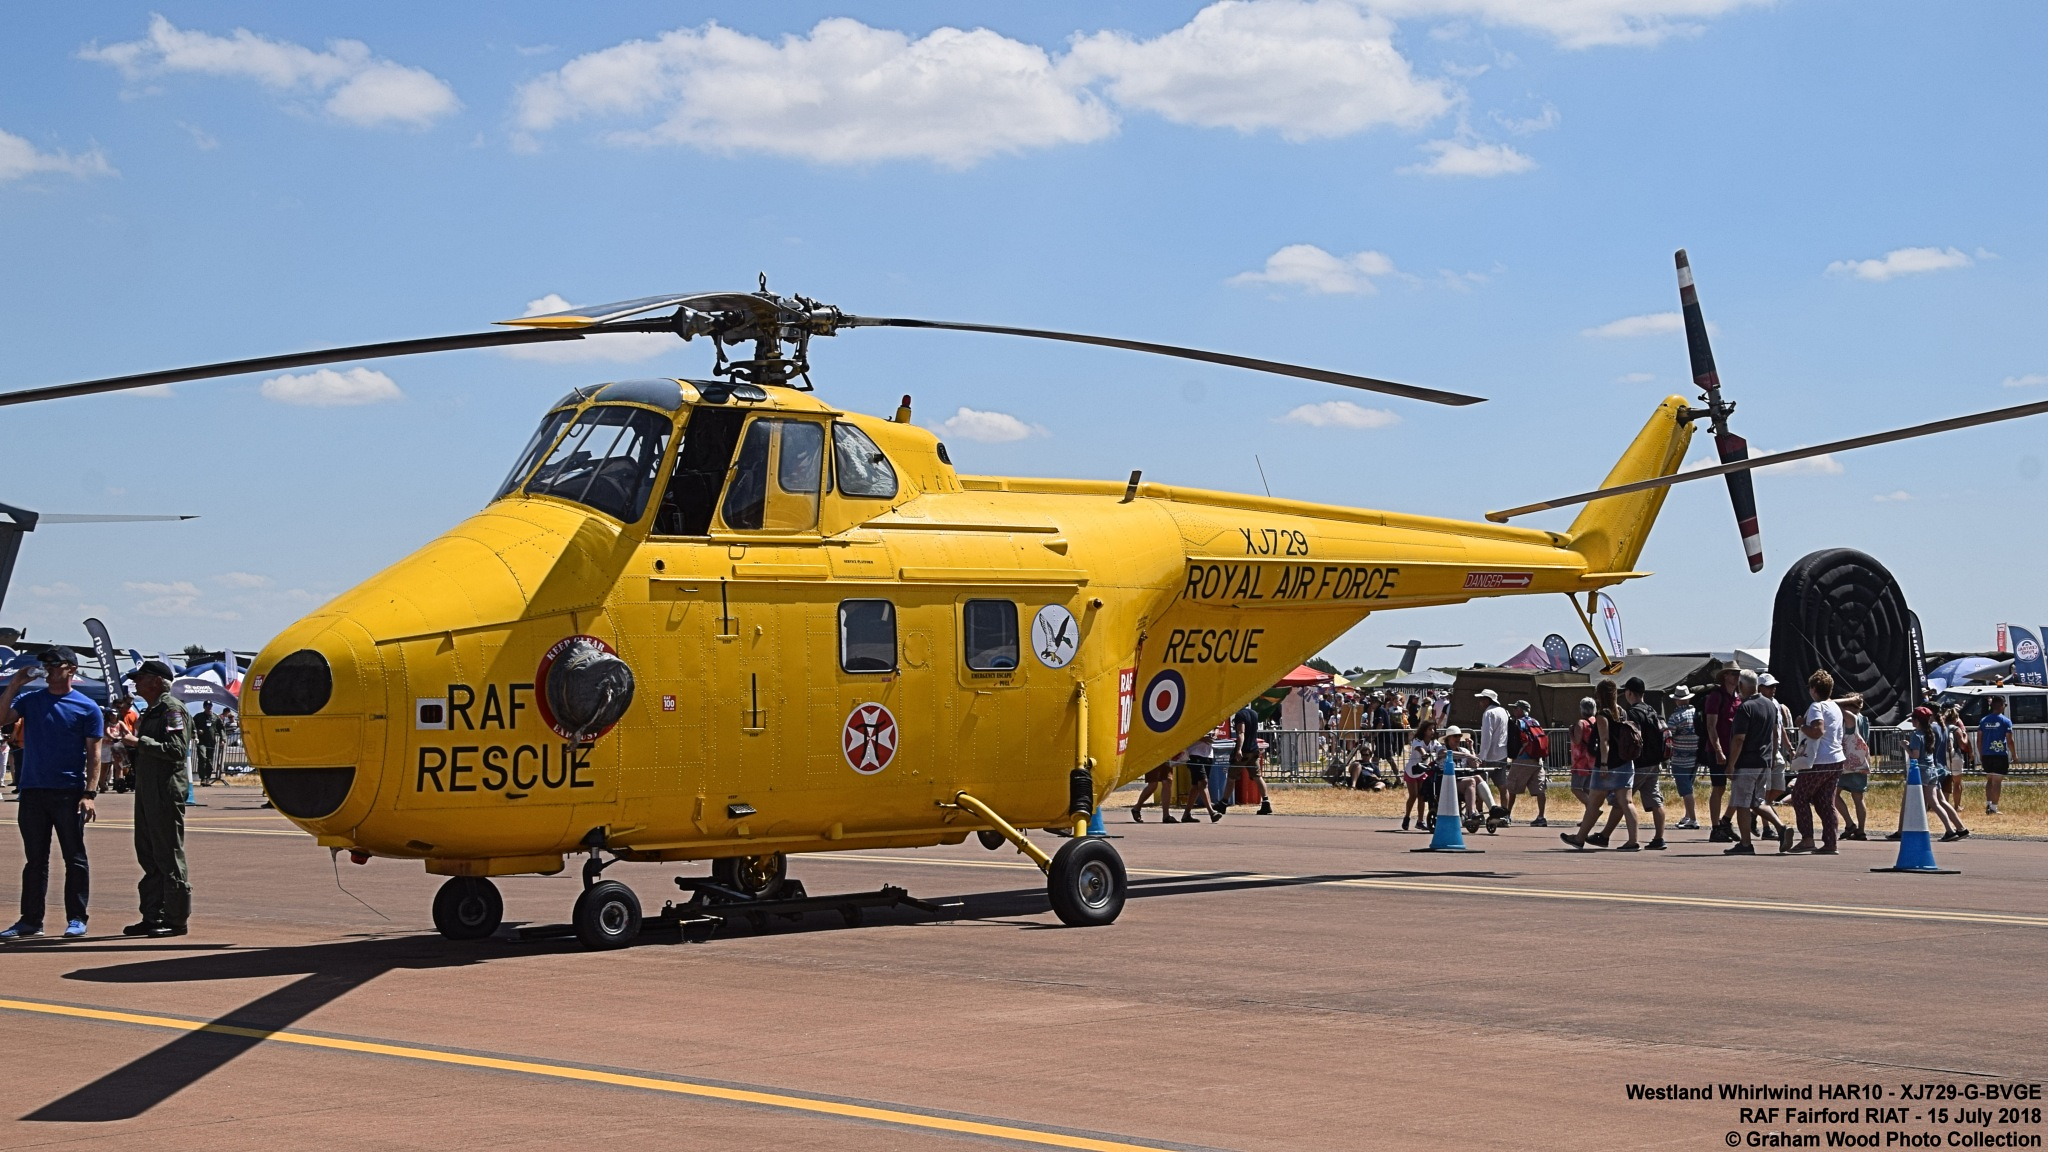 Westland Whirlwind HAR10 - XJ729-G-BVGE by Graham Wood Photo Collection